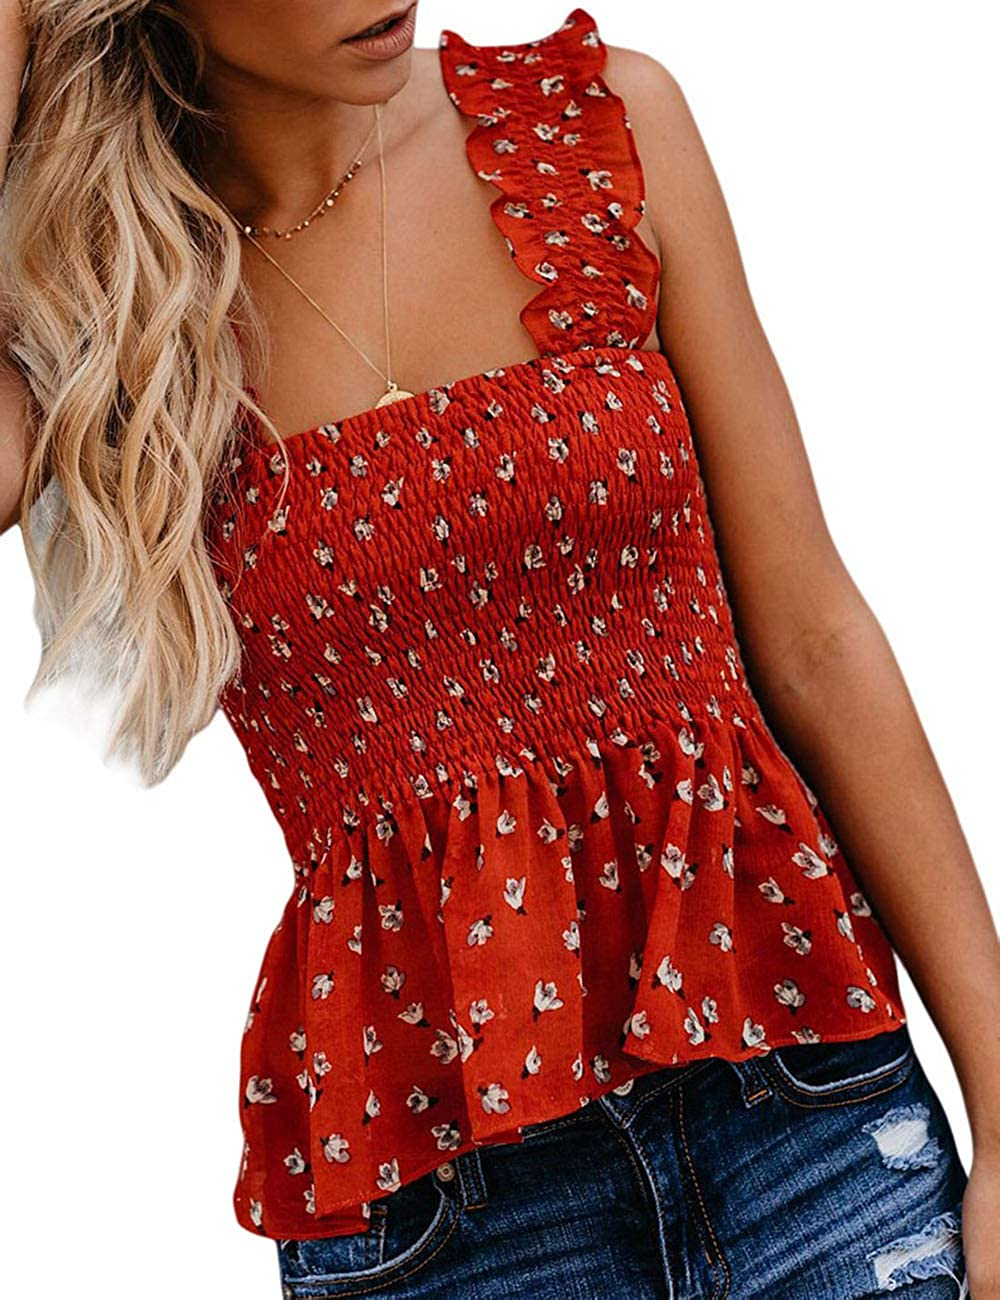 CILKOO Womens Frill Smocked Crop Tank Top Tie Shoulder Strap Vest Tanks Tops Blouse T Shirts(S-XXL)